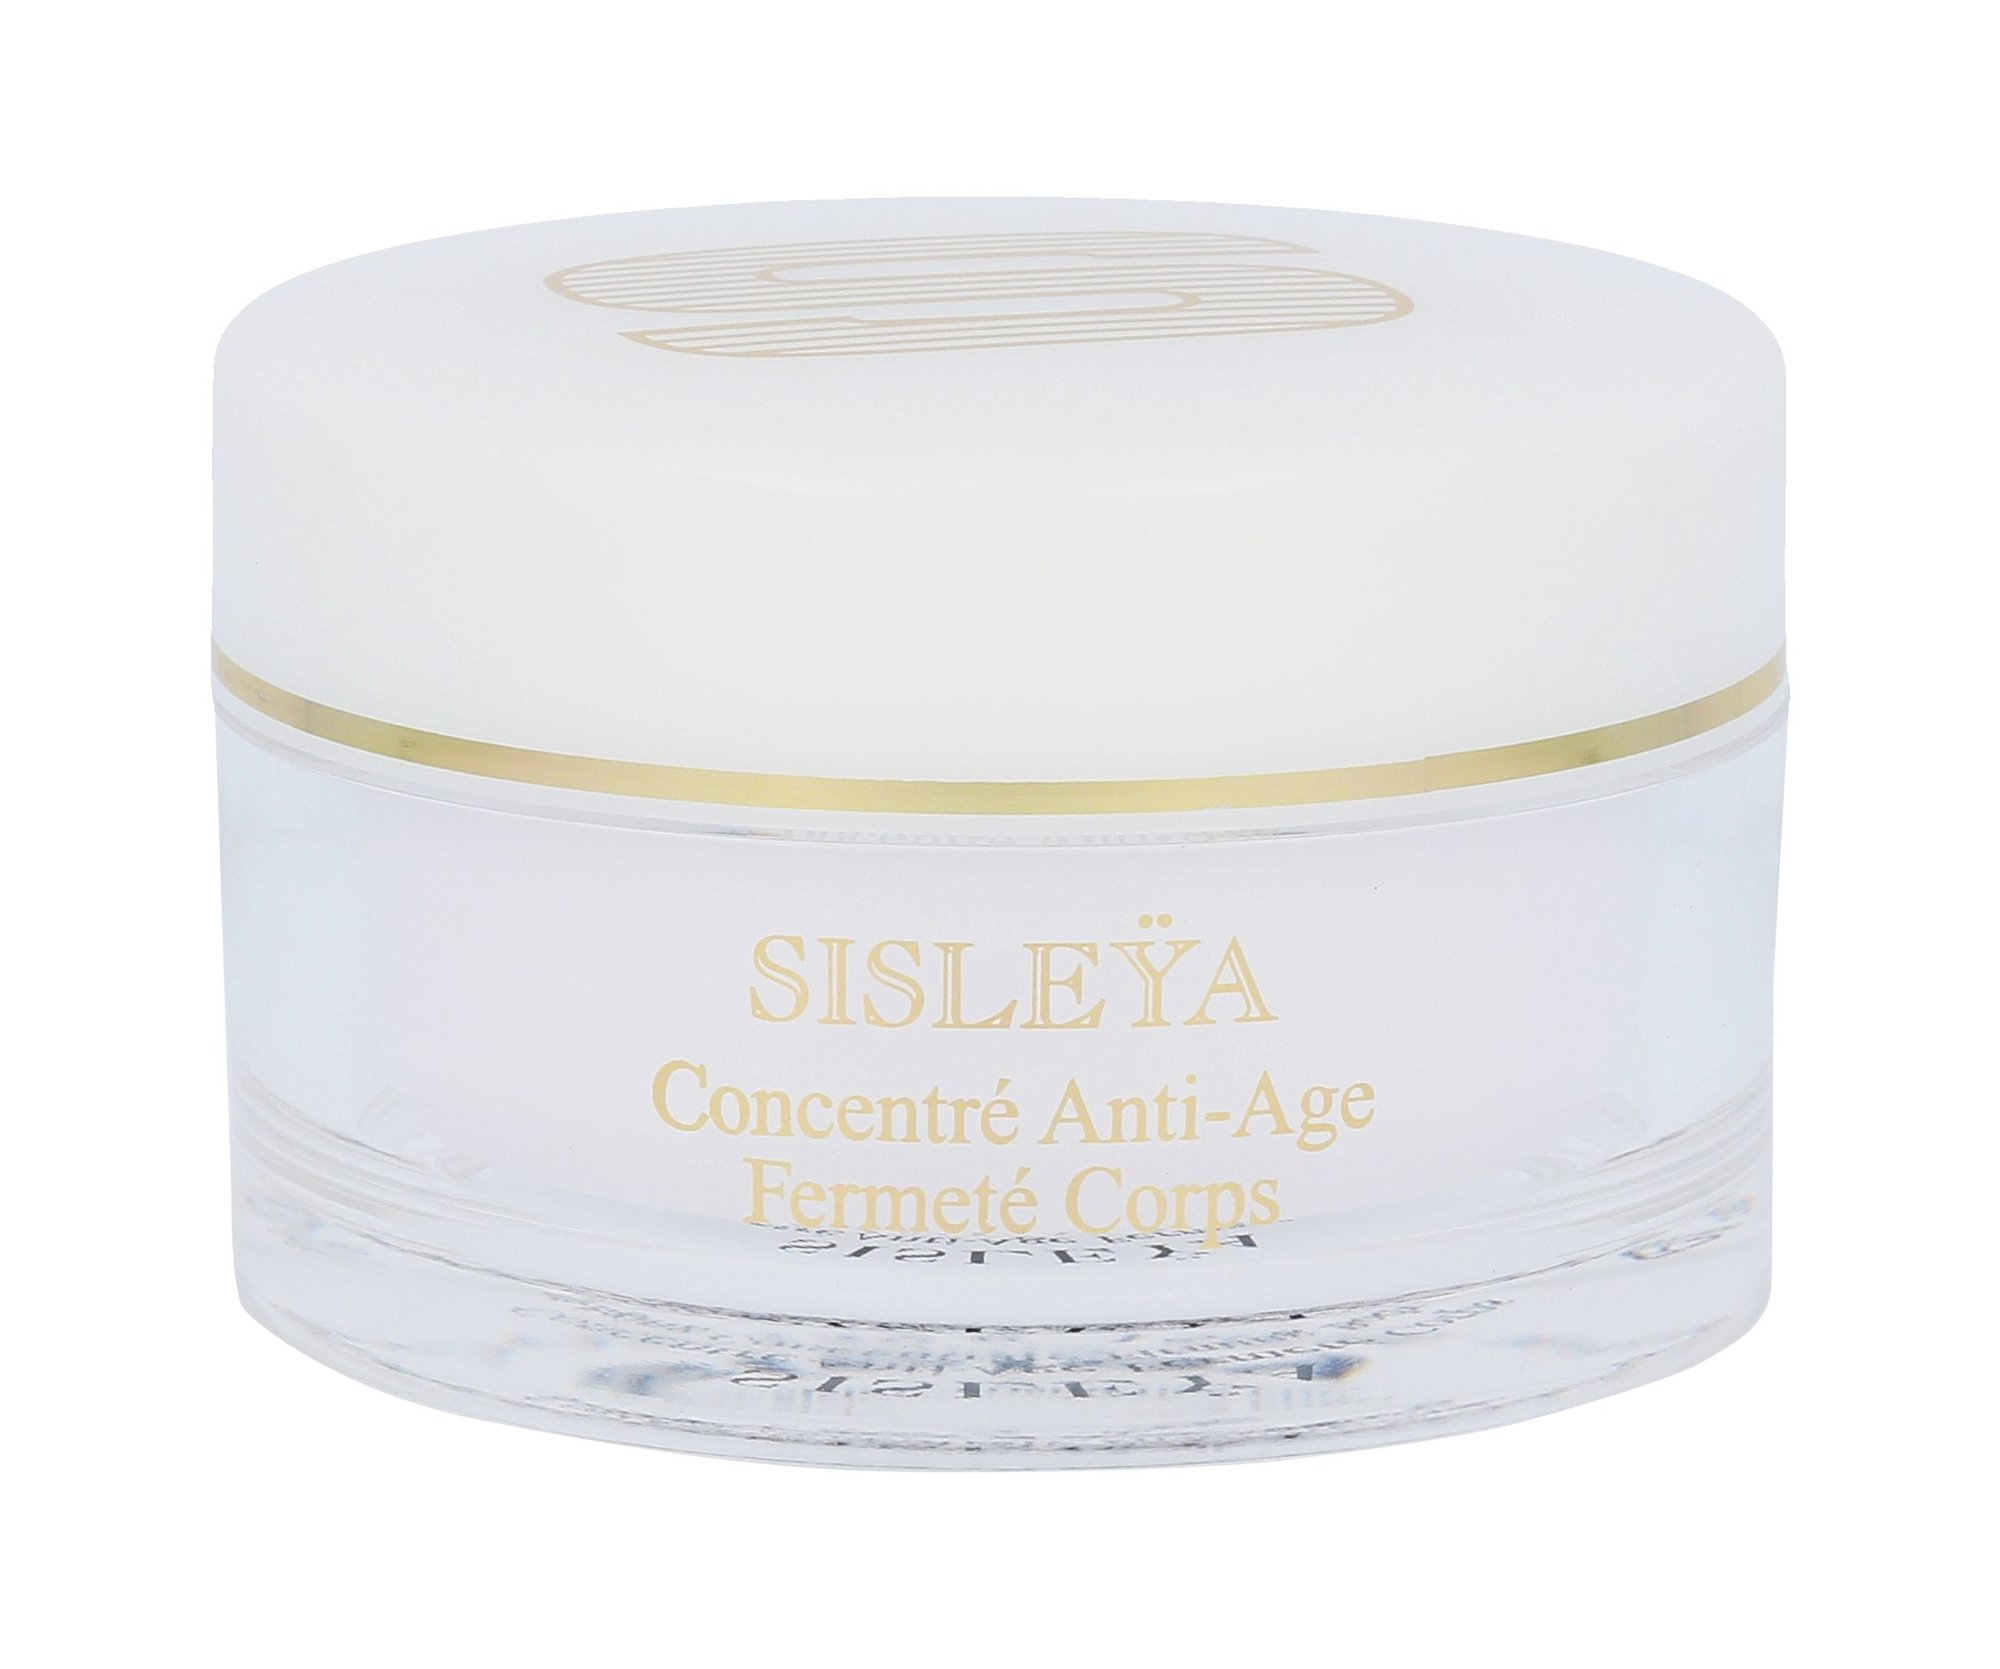 Sisley Anti-Aging Concentrate Firming Body Care Cosmetic 150ml